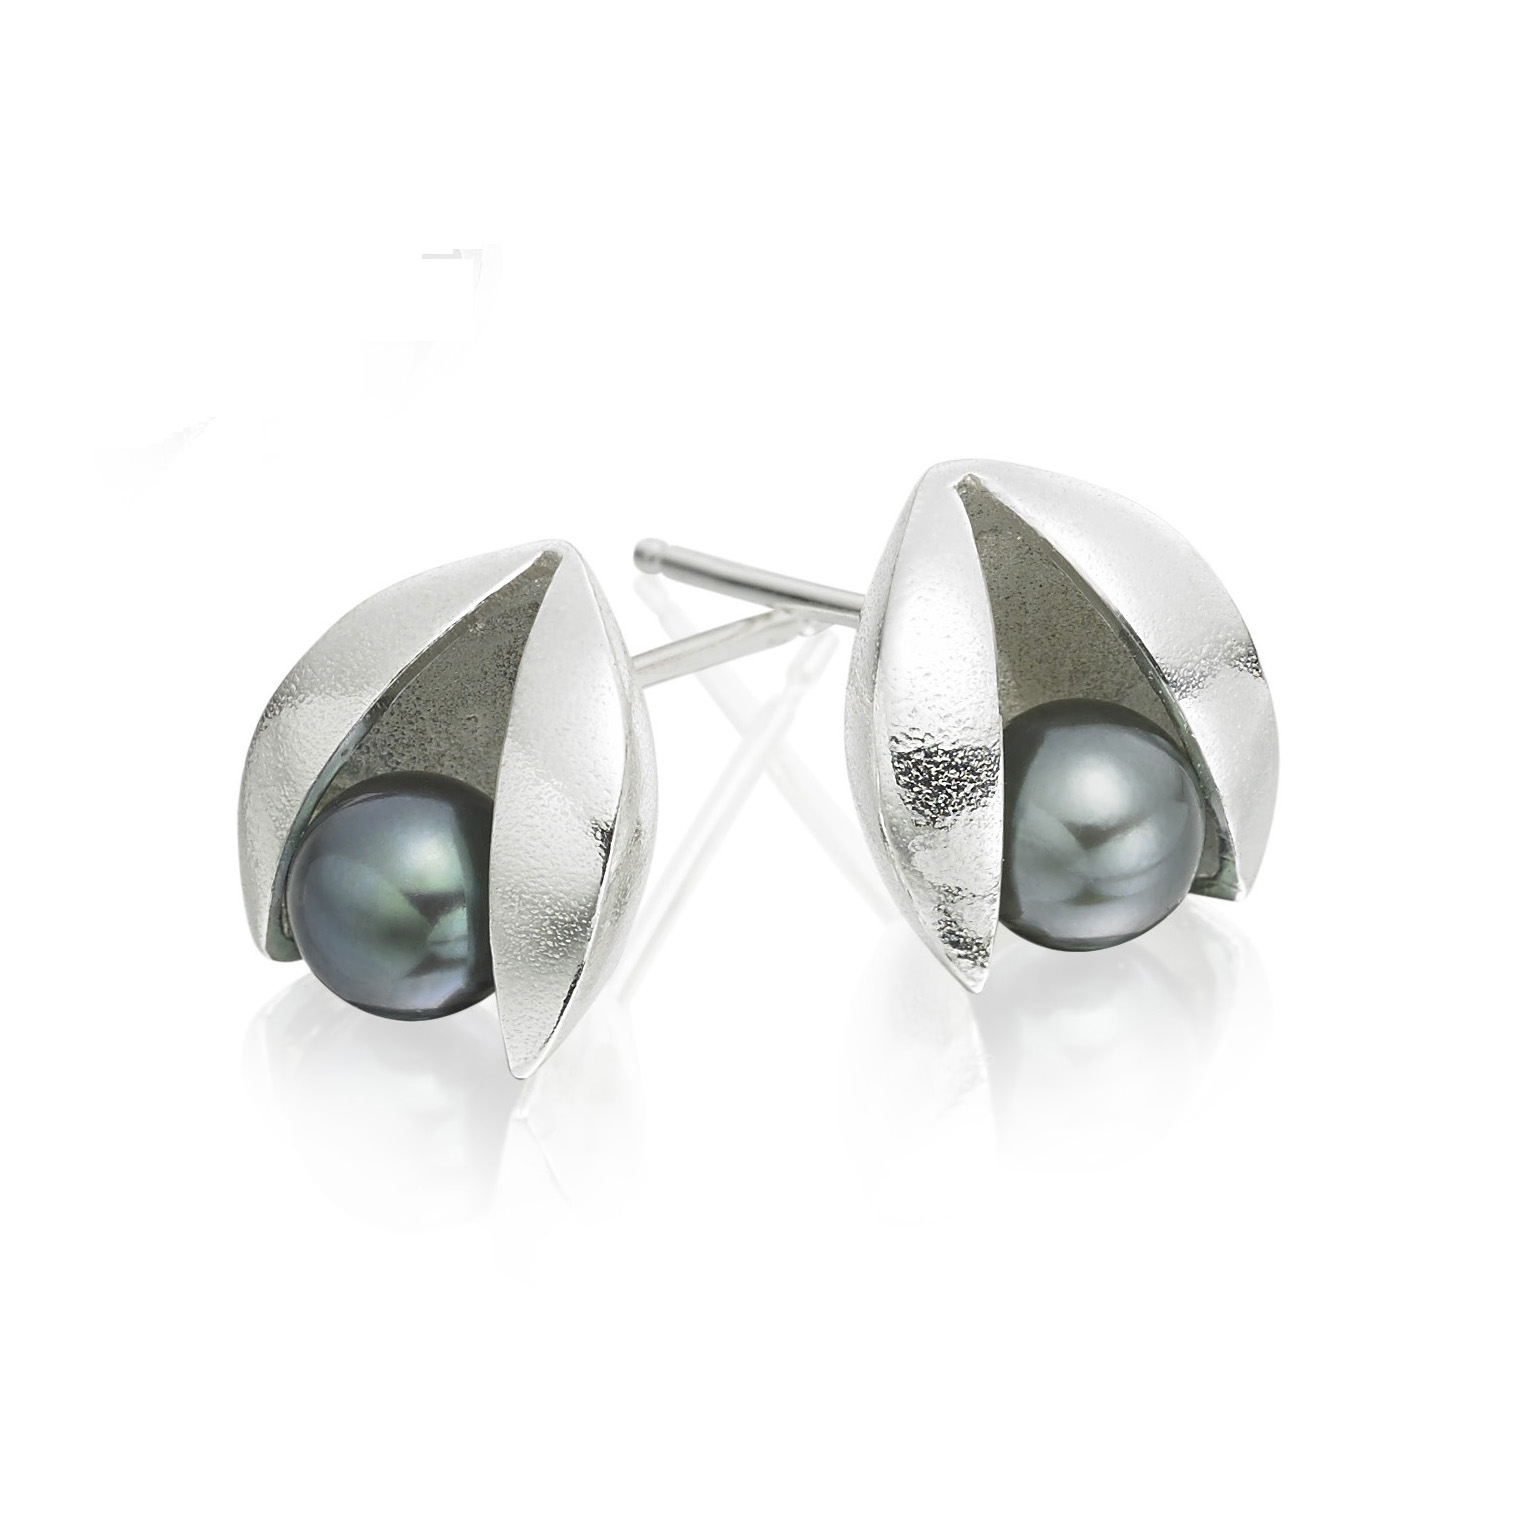 Peacocok blue pearl tension earrings